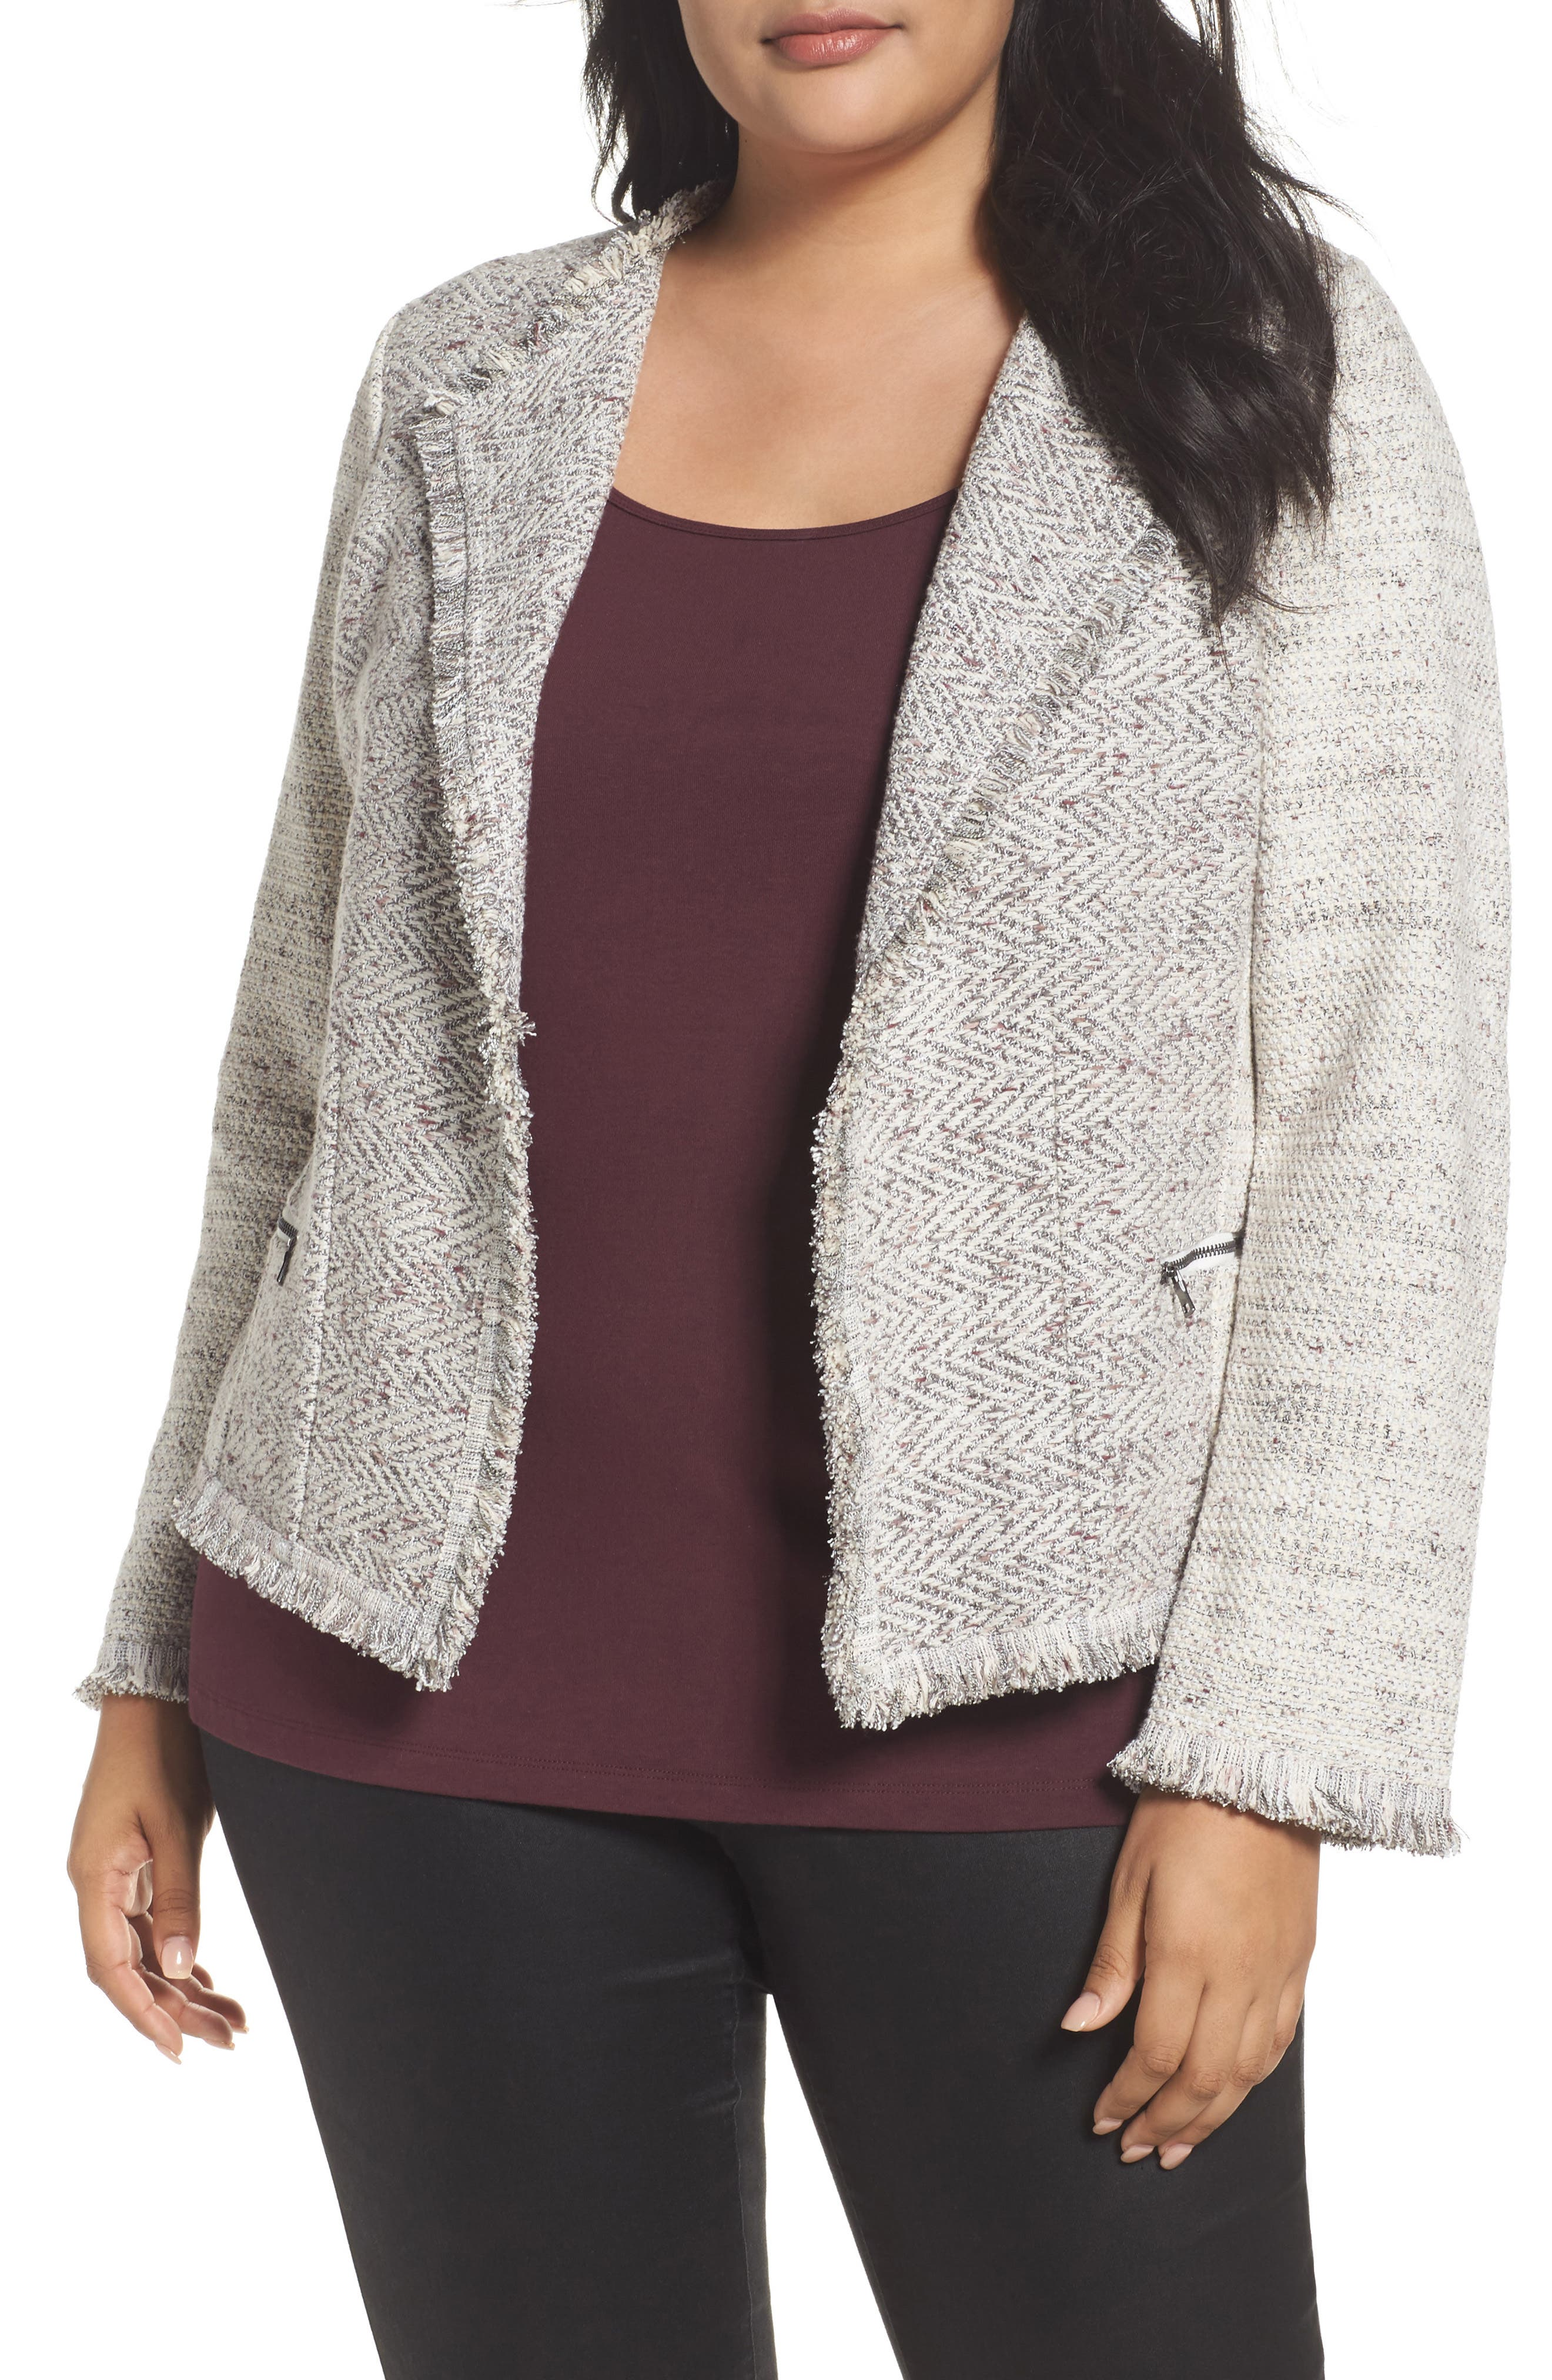 Chilled Tweed Jacket,                             Main thumbnail 1, color,                             Grey Multi